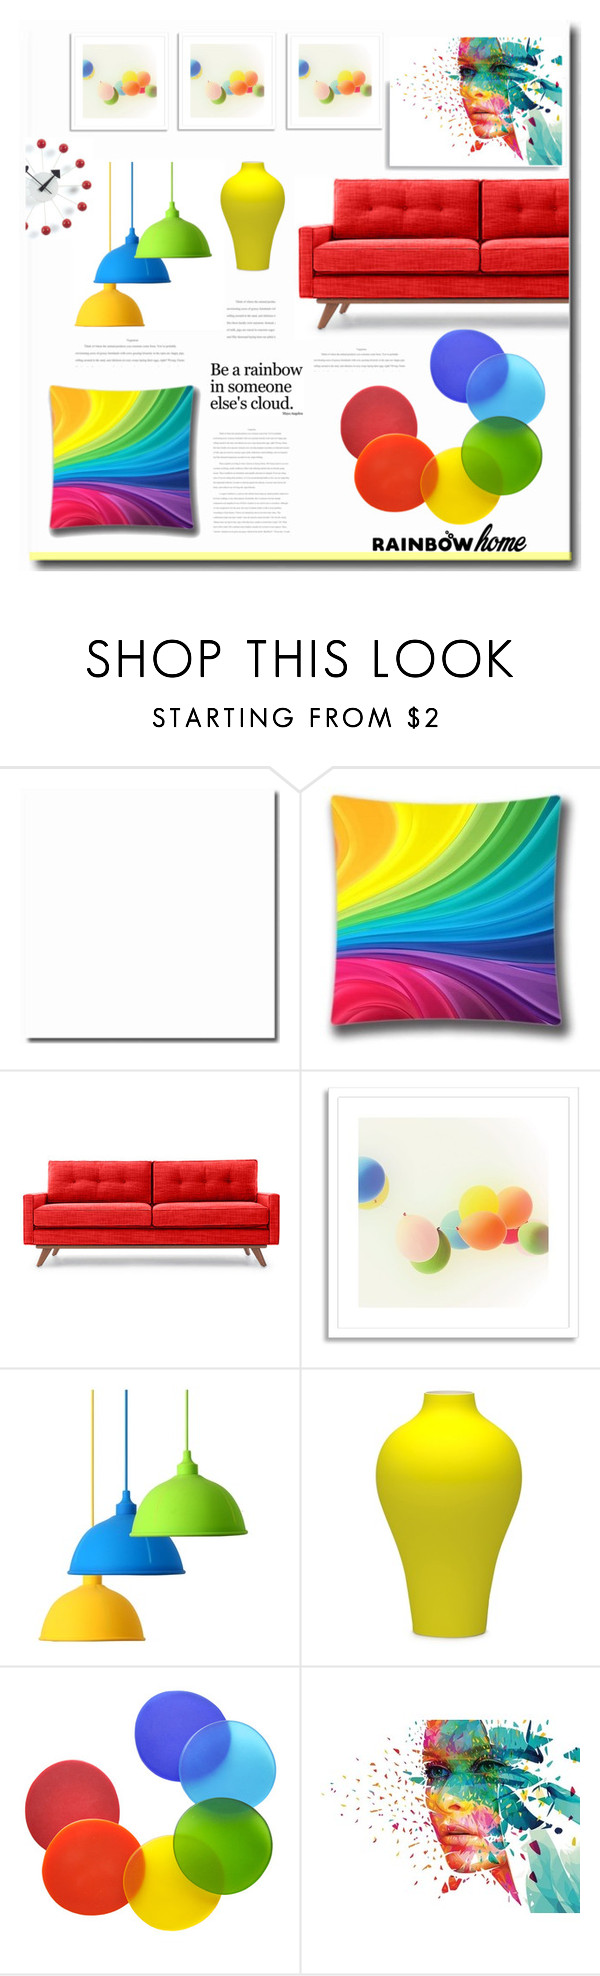 """Rainbow"" by jana-masarovicova ❤ liked on Polyvore featuring interior, interiors, interior design, home, home decor, interior decorating, Thrive, West Elm, Art Lavie and Tina Frey Designs"